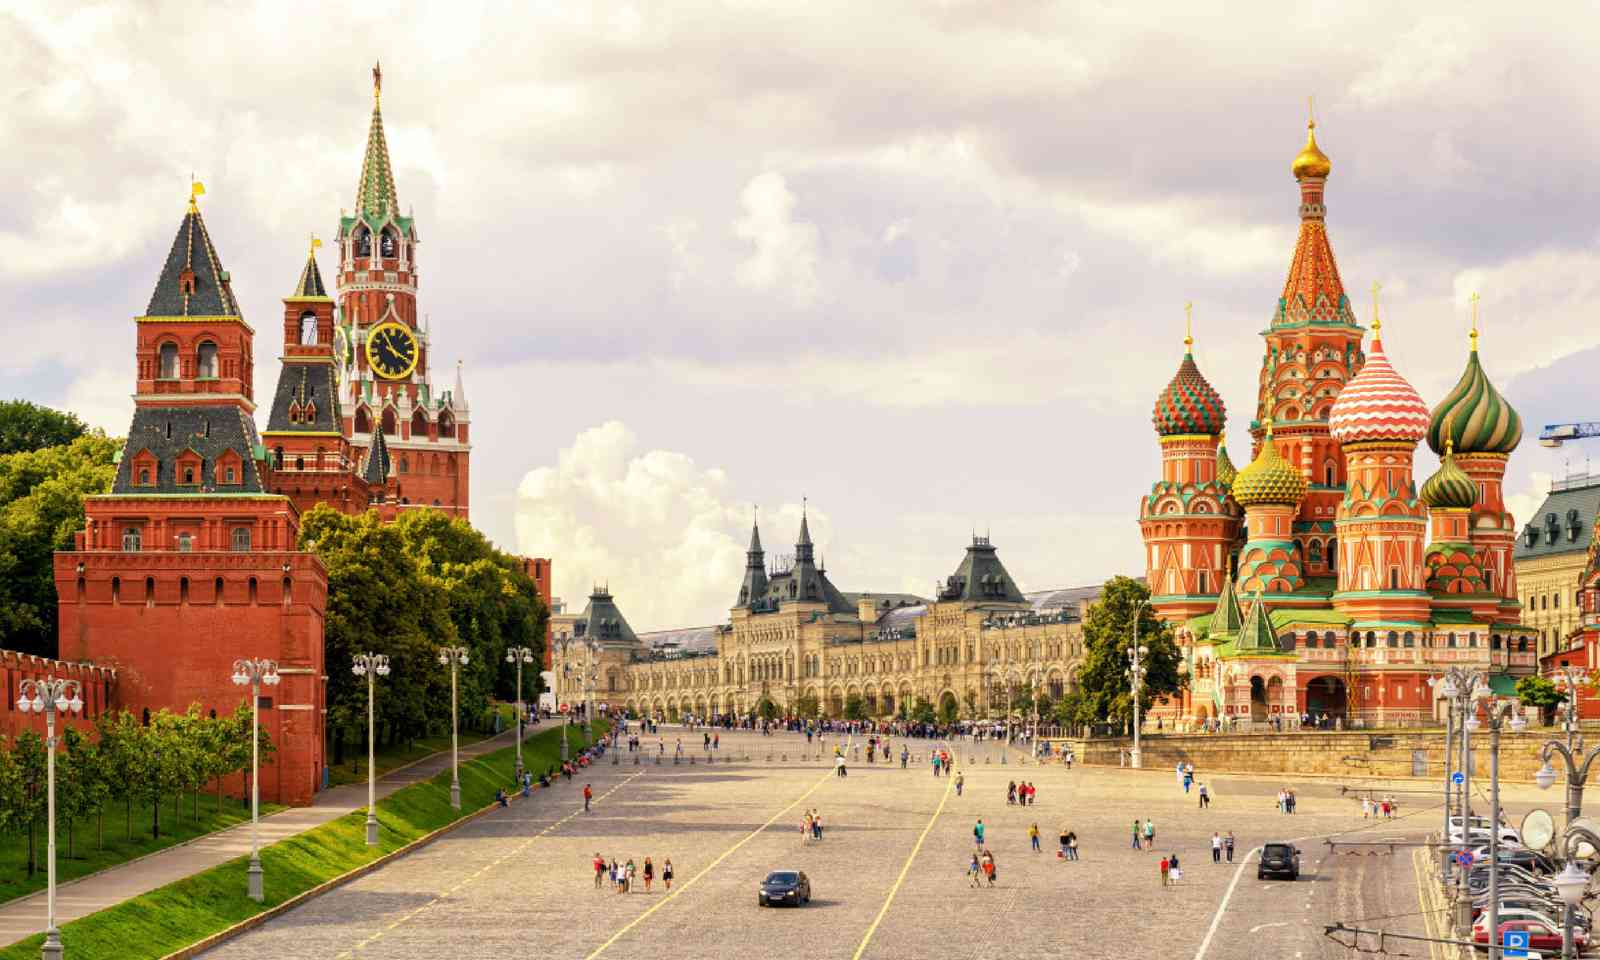 Red Square in Moscow, Russia (Shutterstock)